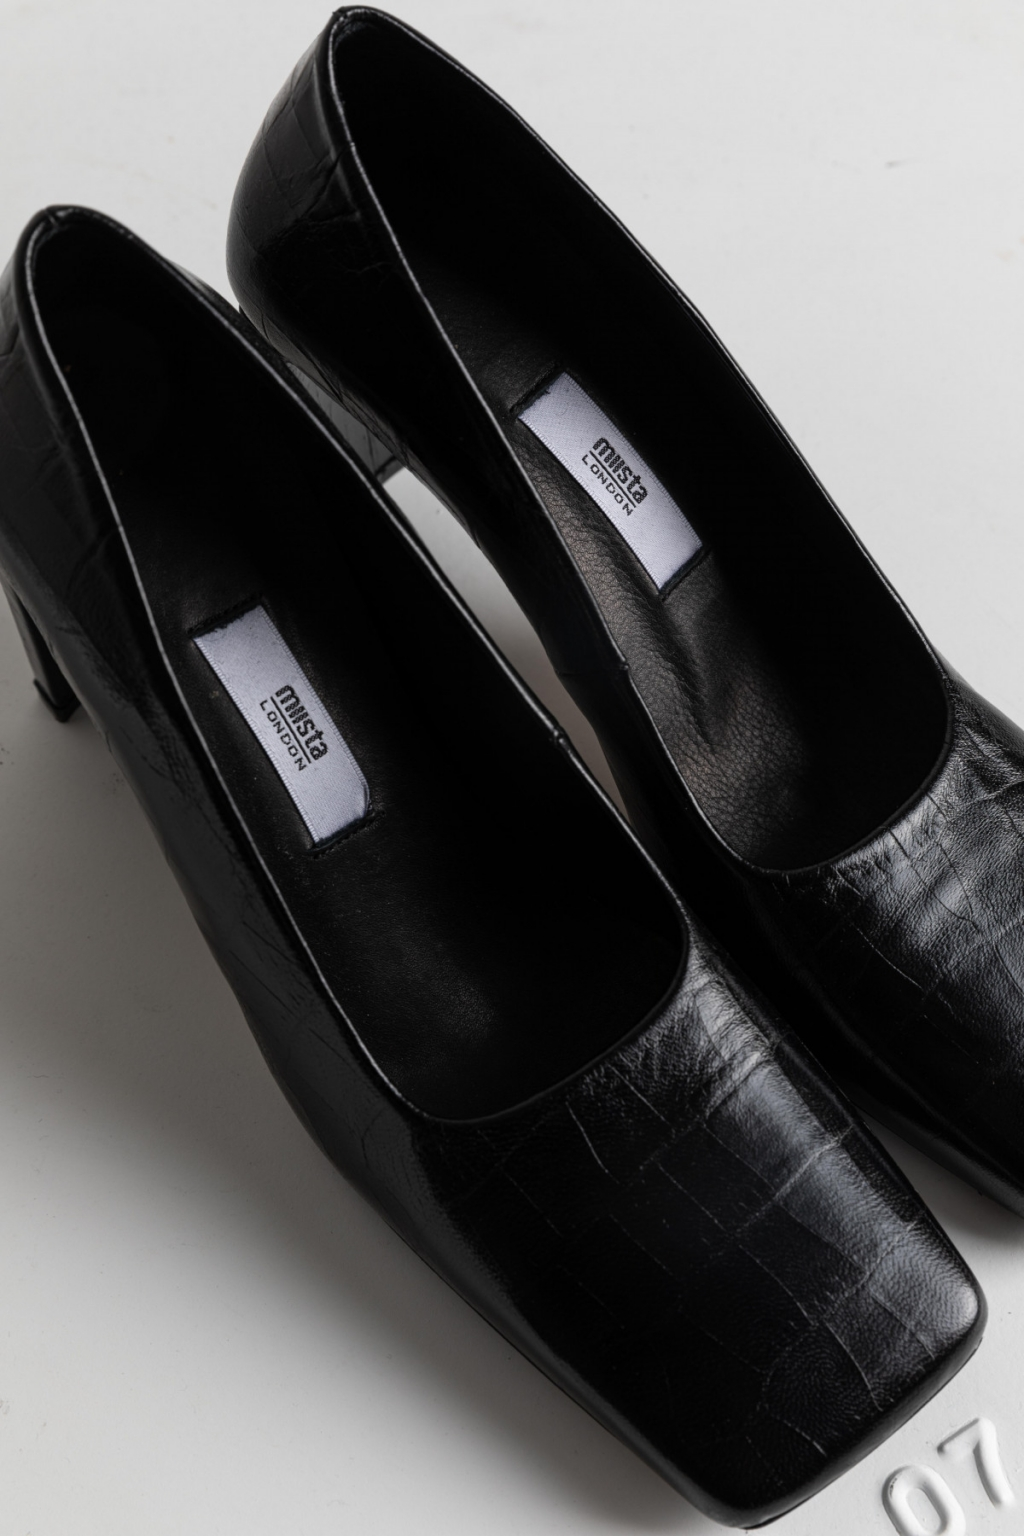 MIISTA shoes are now available on our online shop!